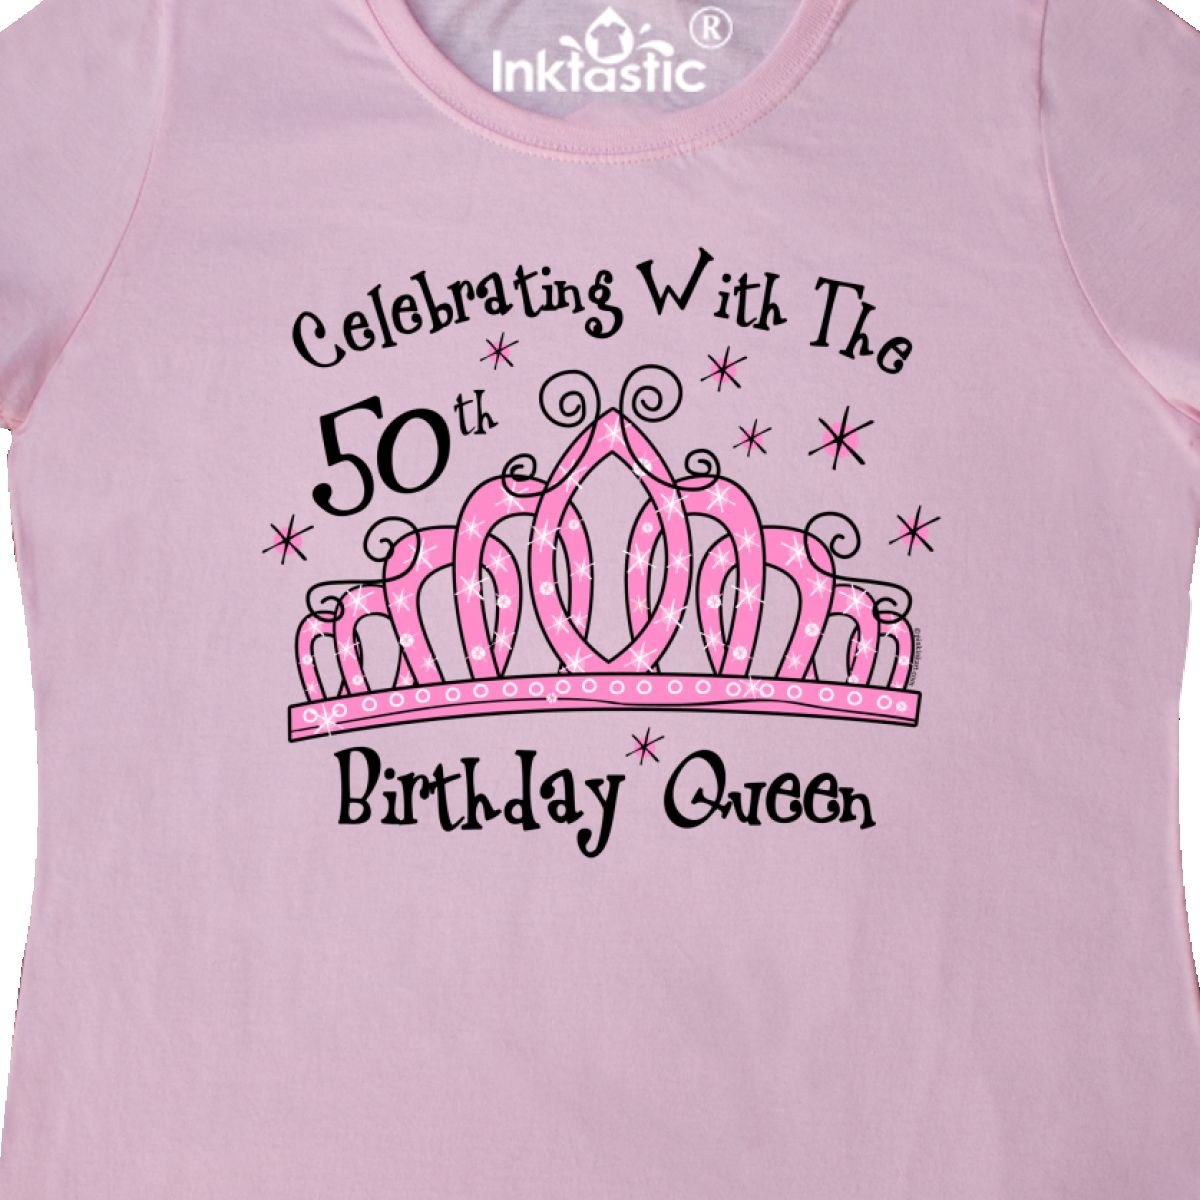 Inktastic-Tiara-50th-Birthday-Queen-CW-Women-039-s-T-Shirt-Celebrating-With-Crown